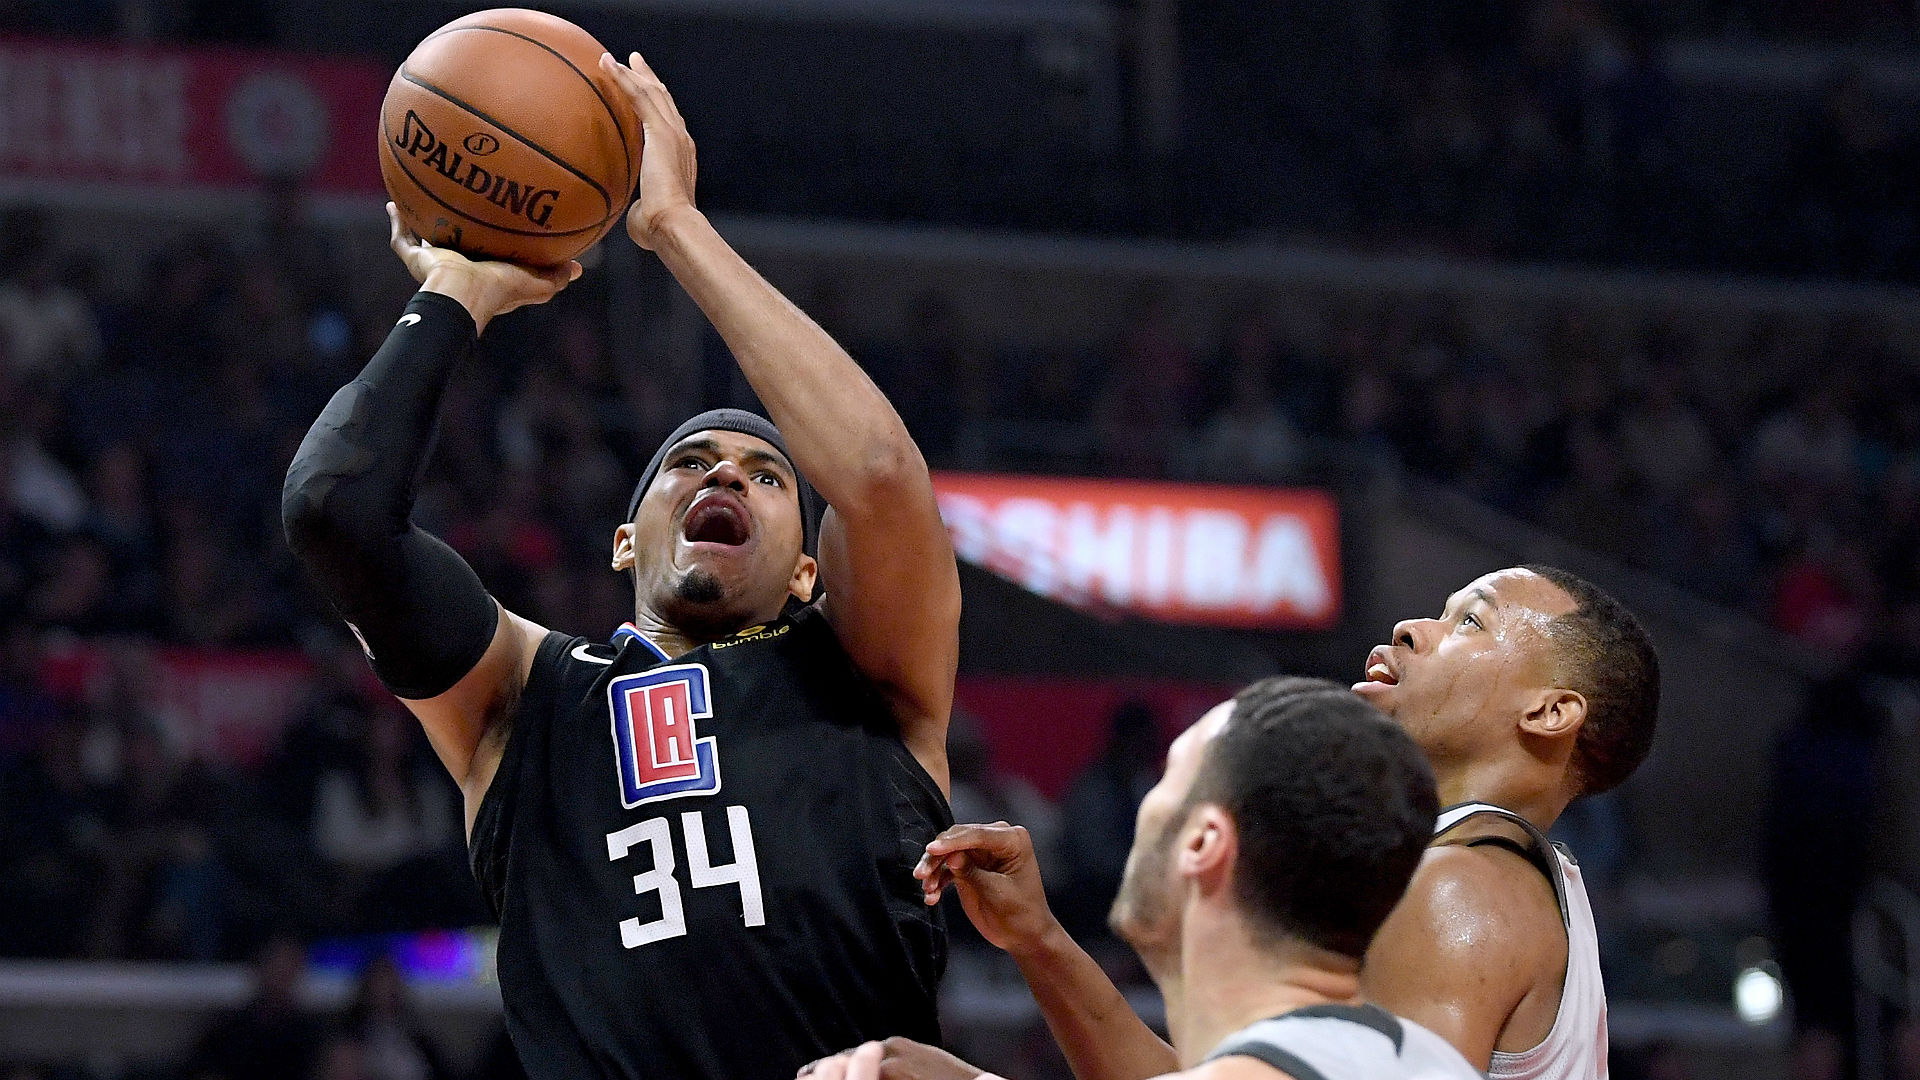 Tobias Harris turned down $80 million extension with Clippers